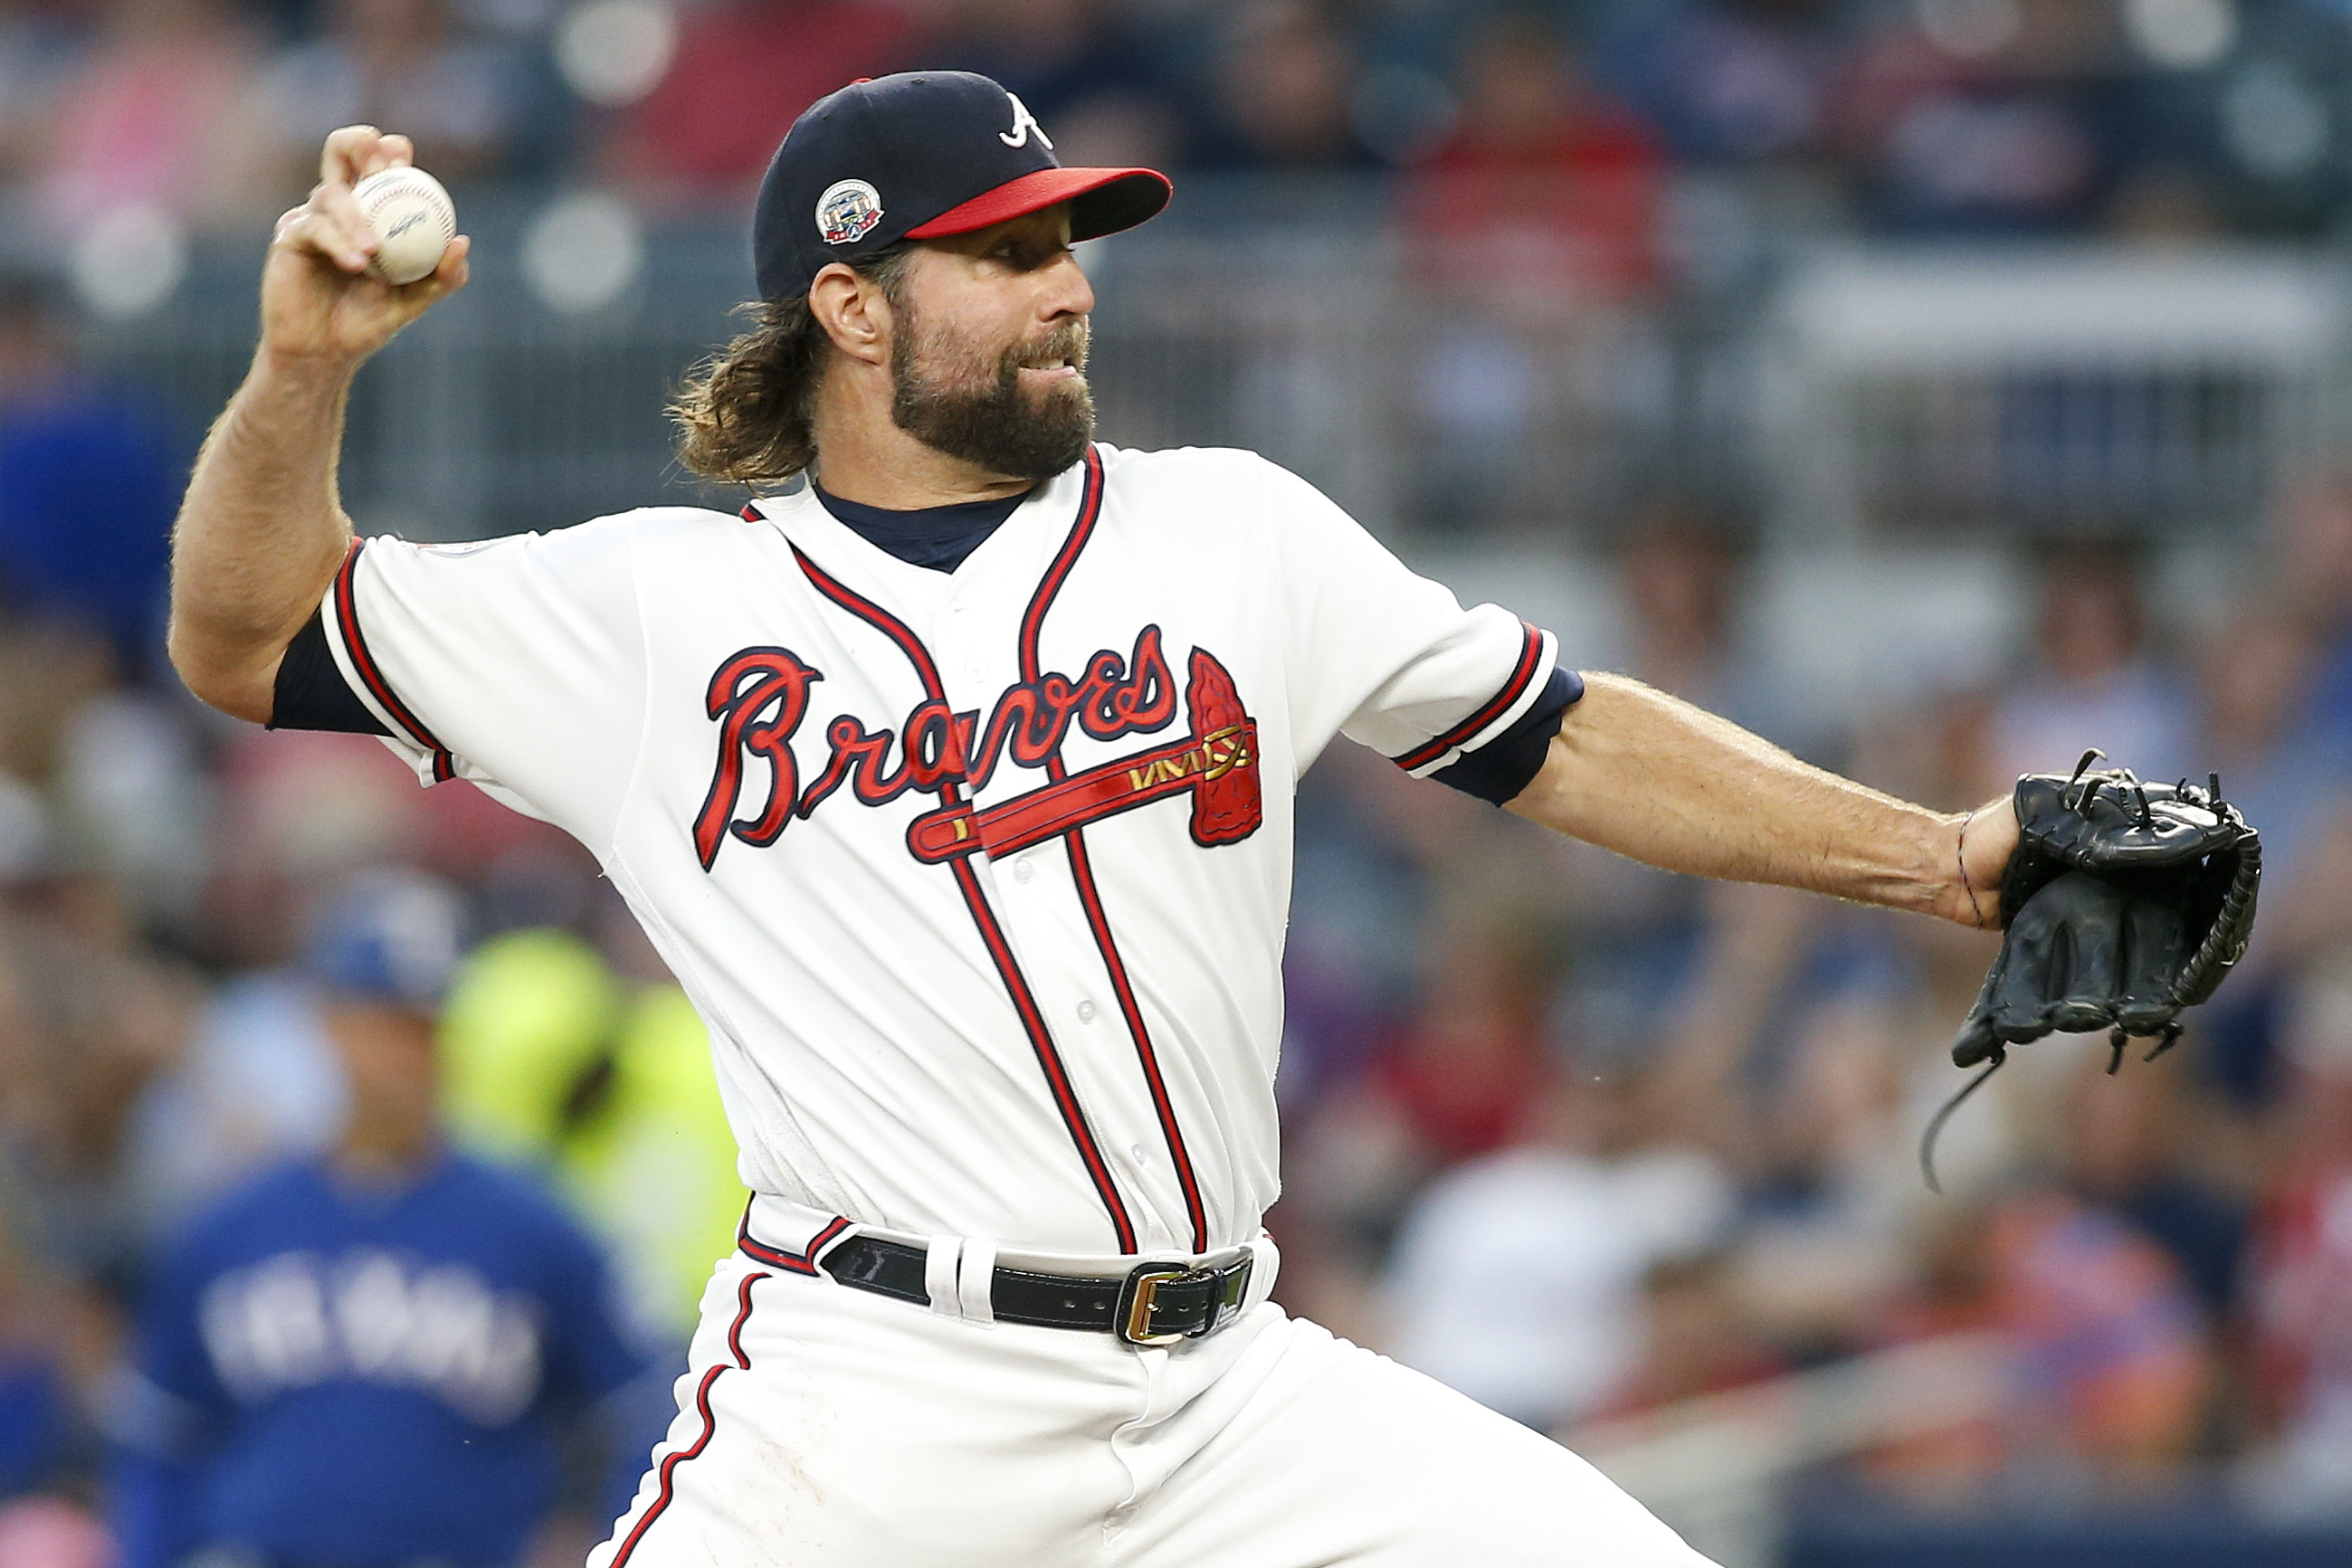 MLB: Texas Rangers at Atlanta Braves